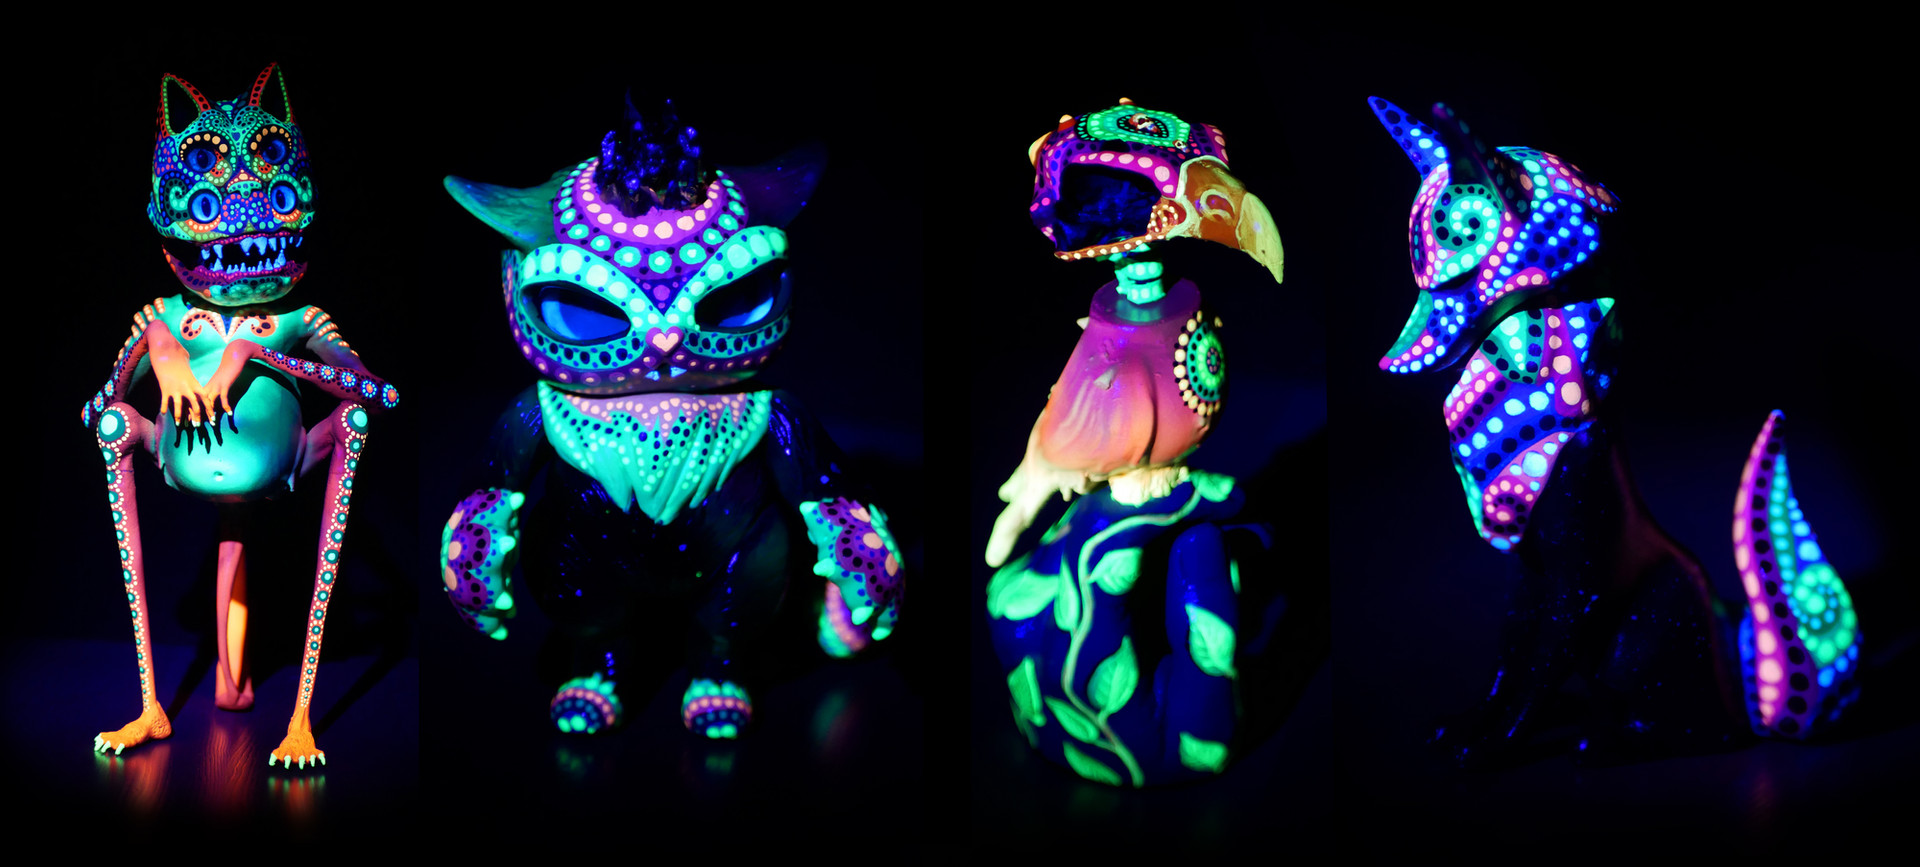 blacklight3.jpg